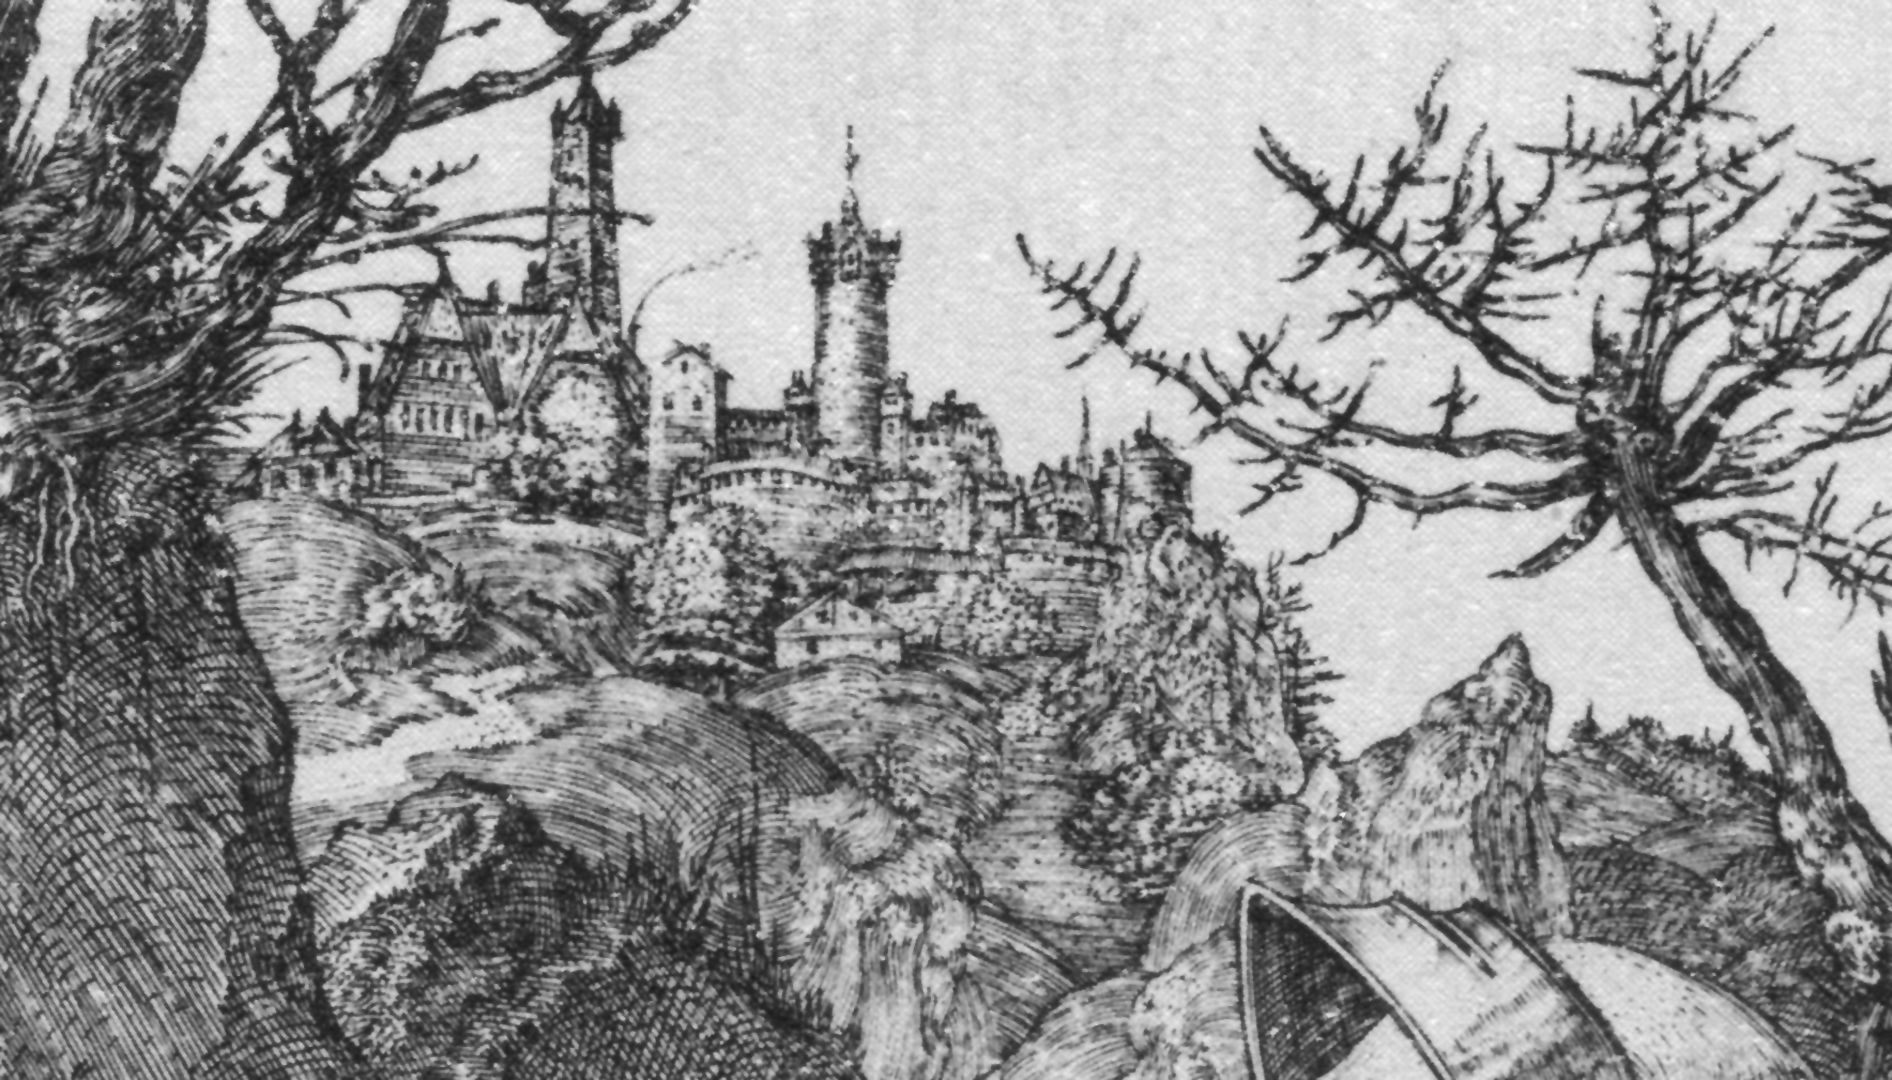 Knight, Death and the Devil Detail with castle